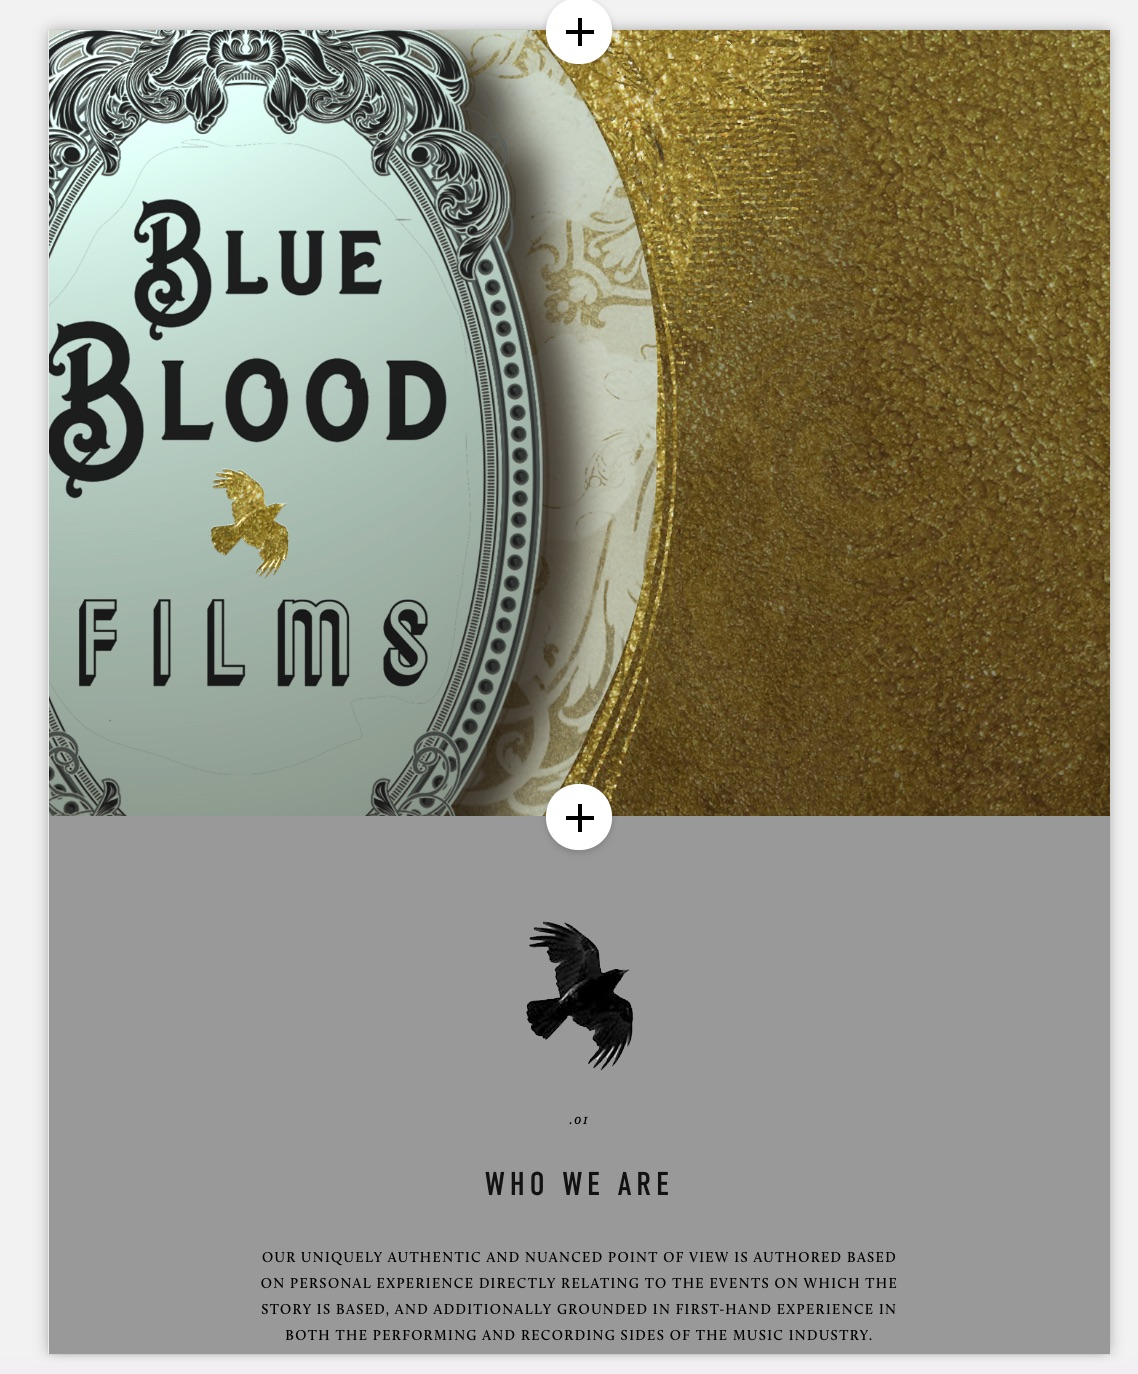 Blue_Blood_Films_001.jpg